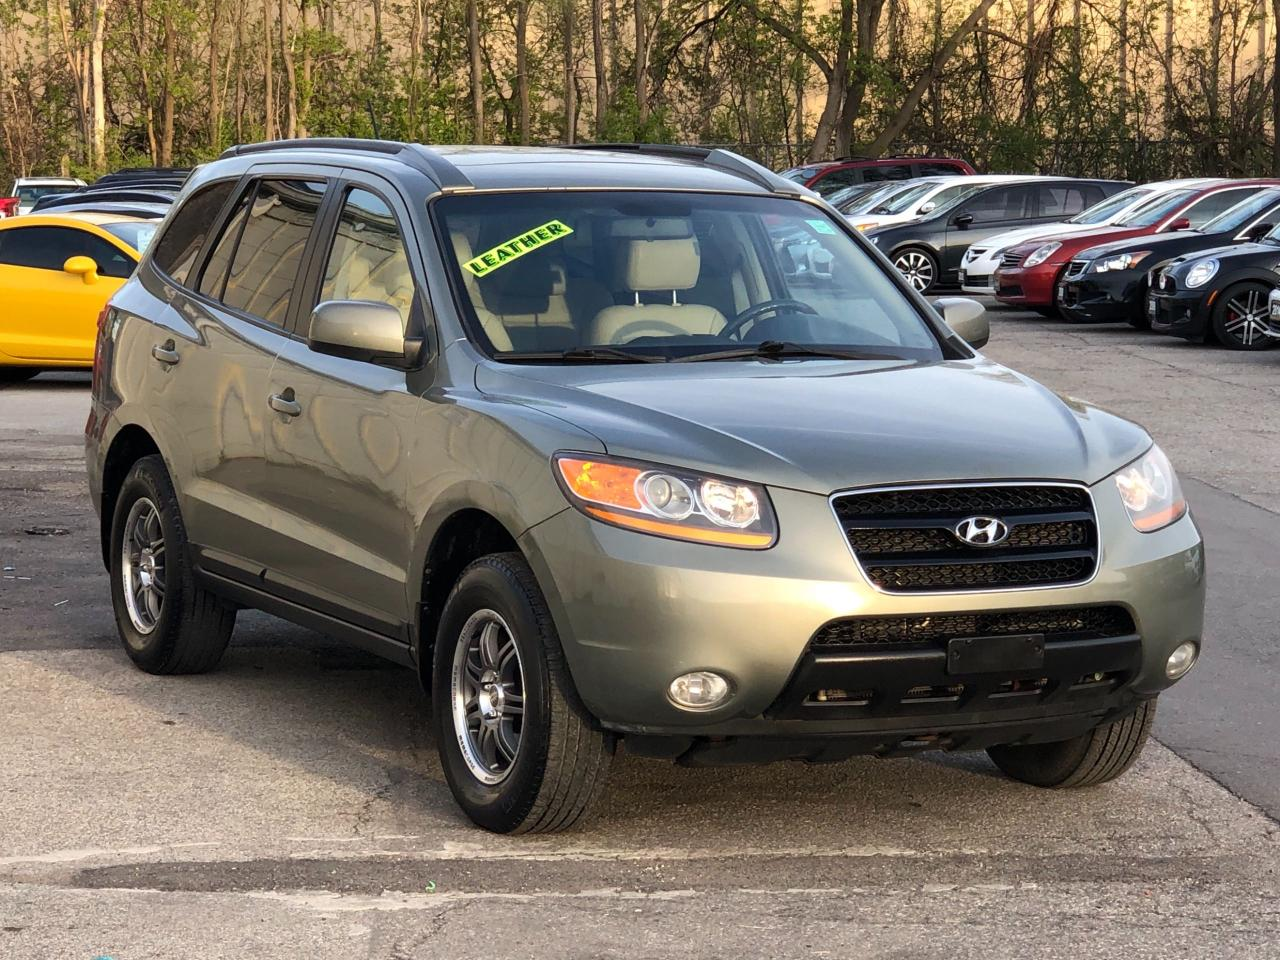 medium resolution of used 2008 hyundai santa fe leather sunroof alloys heated seats fully loaded for sale in mississauga ontario carpages ca